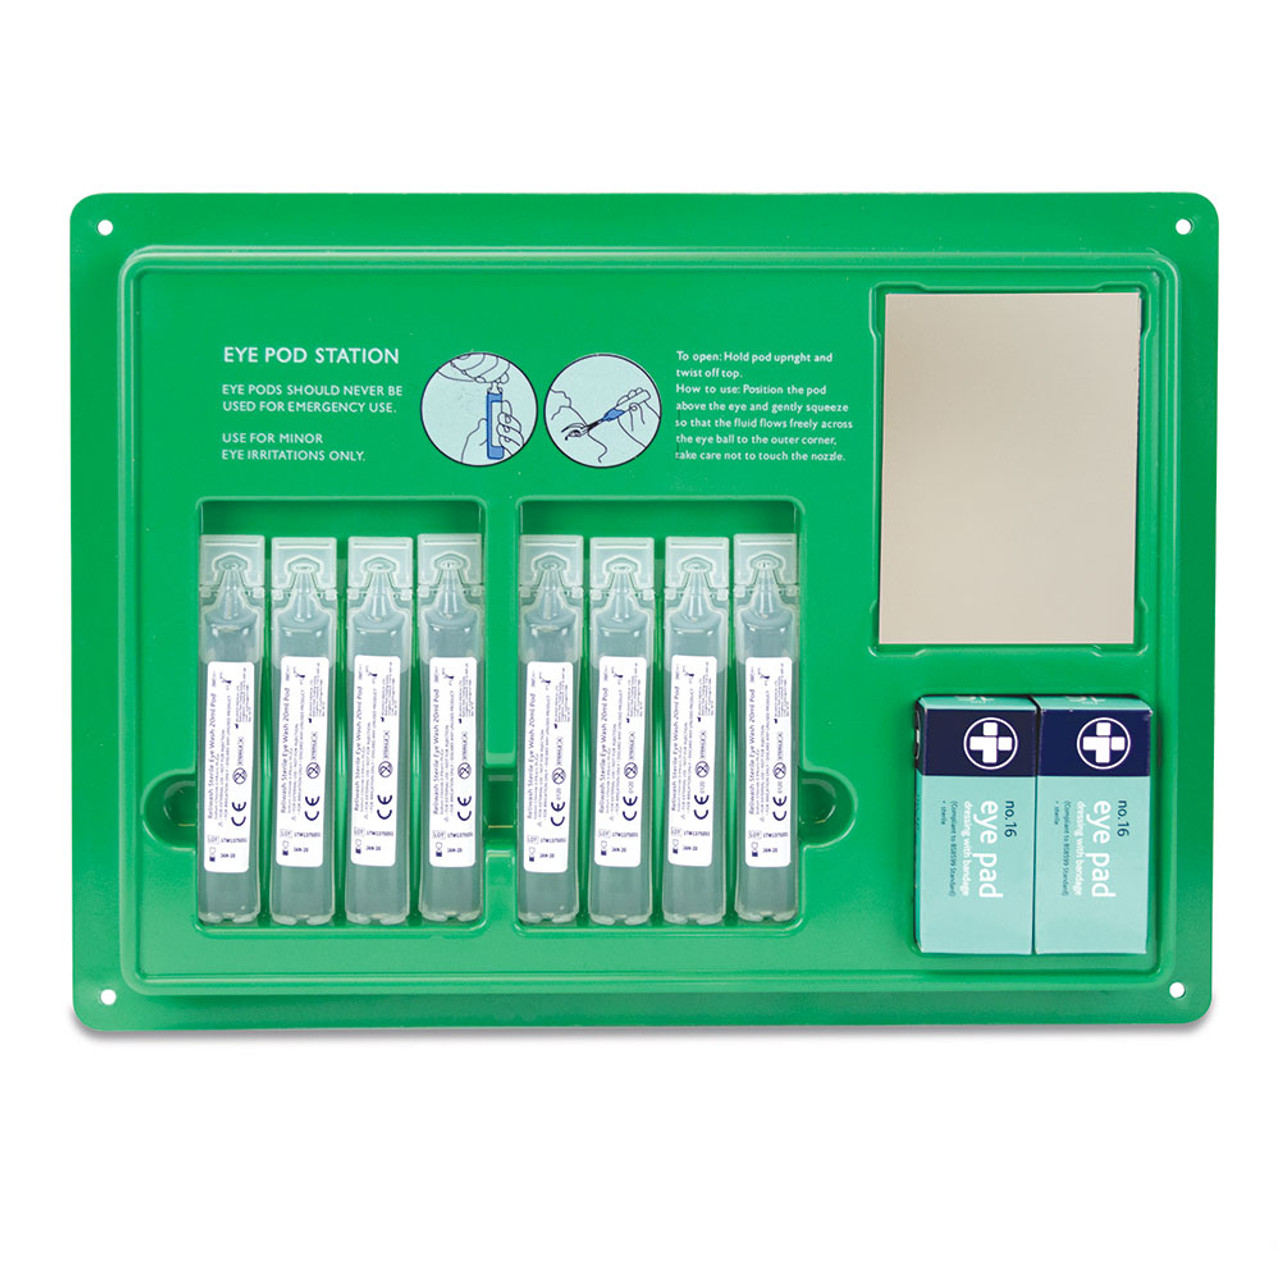 FEY2111 Eye Wash Pod 20ml Station   Complete with 8 pods and 2 eye pads